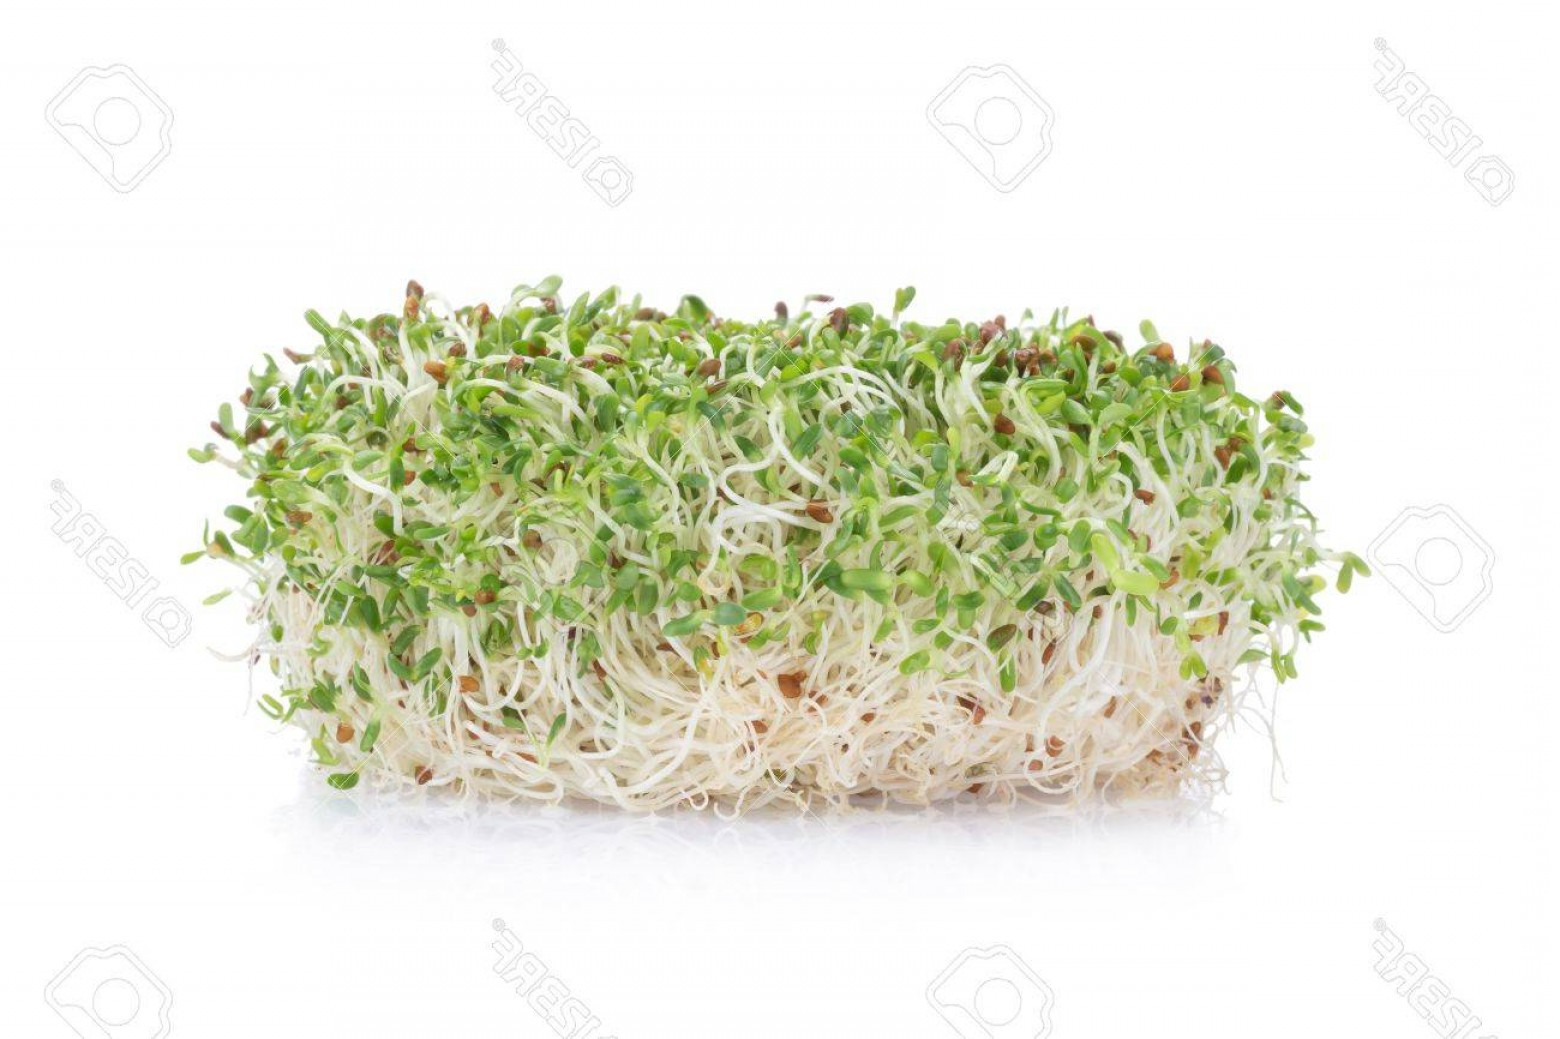 Alfalfa Sprouts Vector: Photosprouted Alfalfa Seeds On A White Background